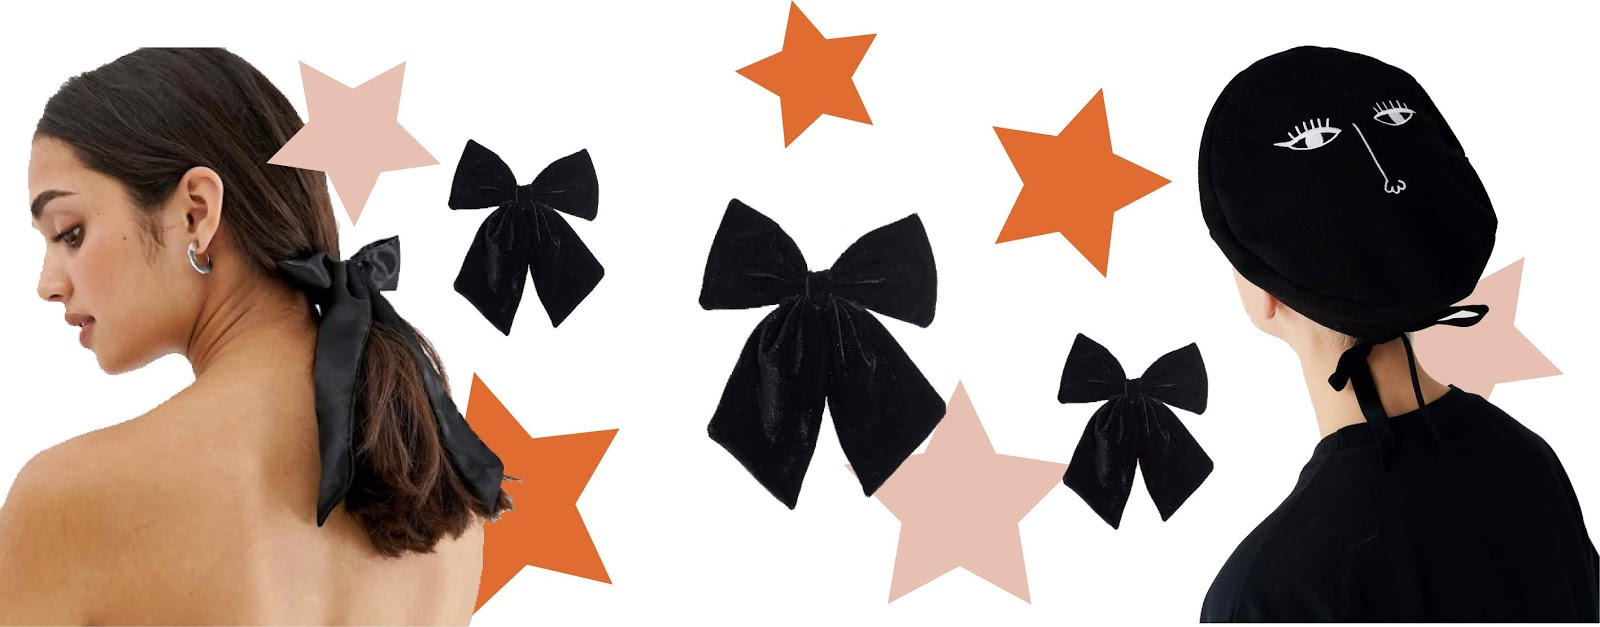 2019 trends bows collage